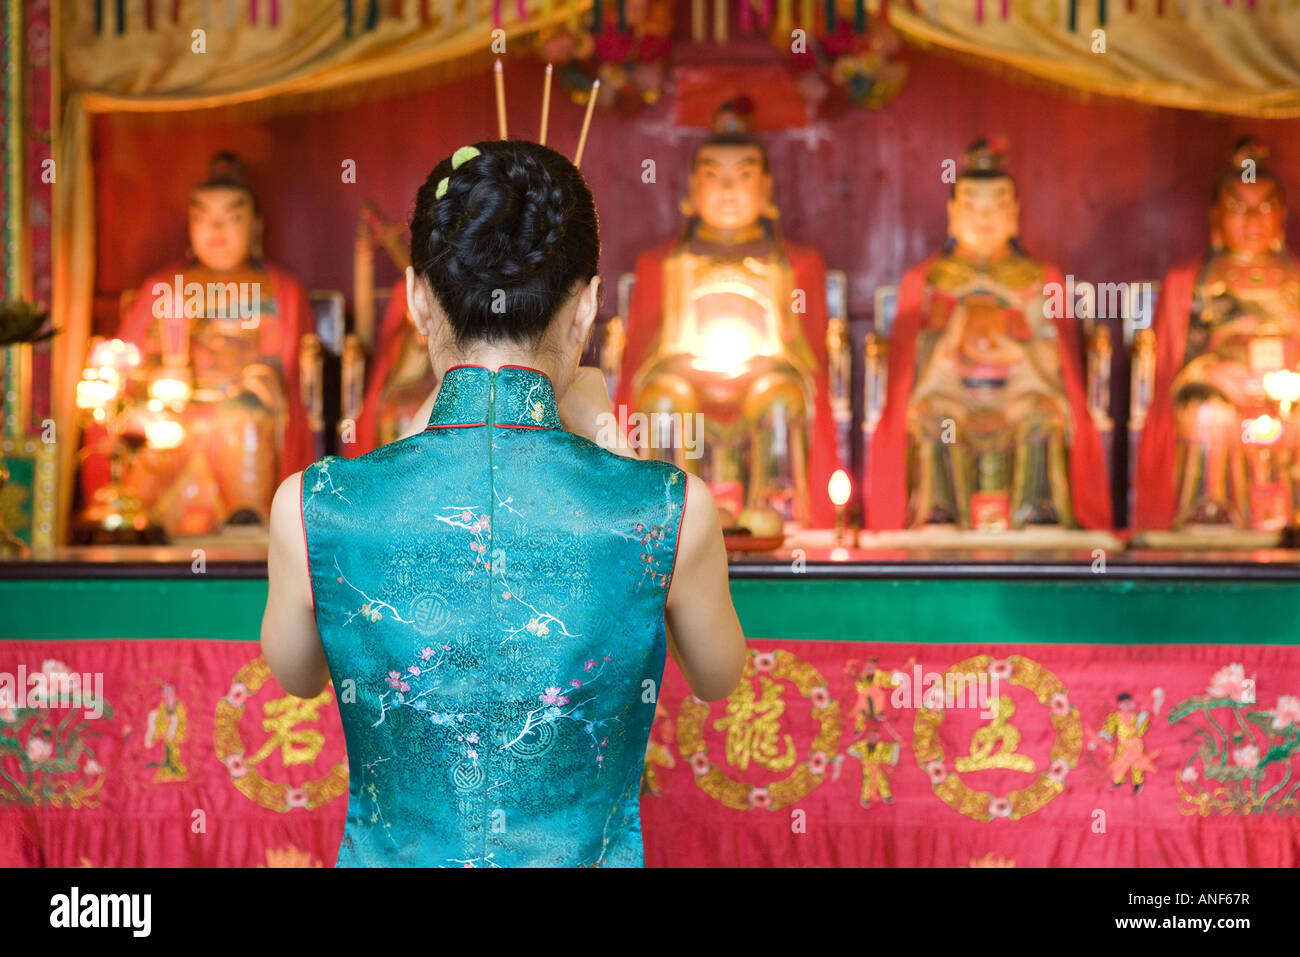 Young woman dressed in traditional Chinese clothing standing at shrine, rear view - Stock Image